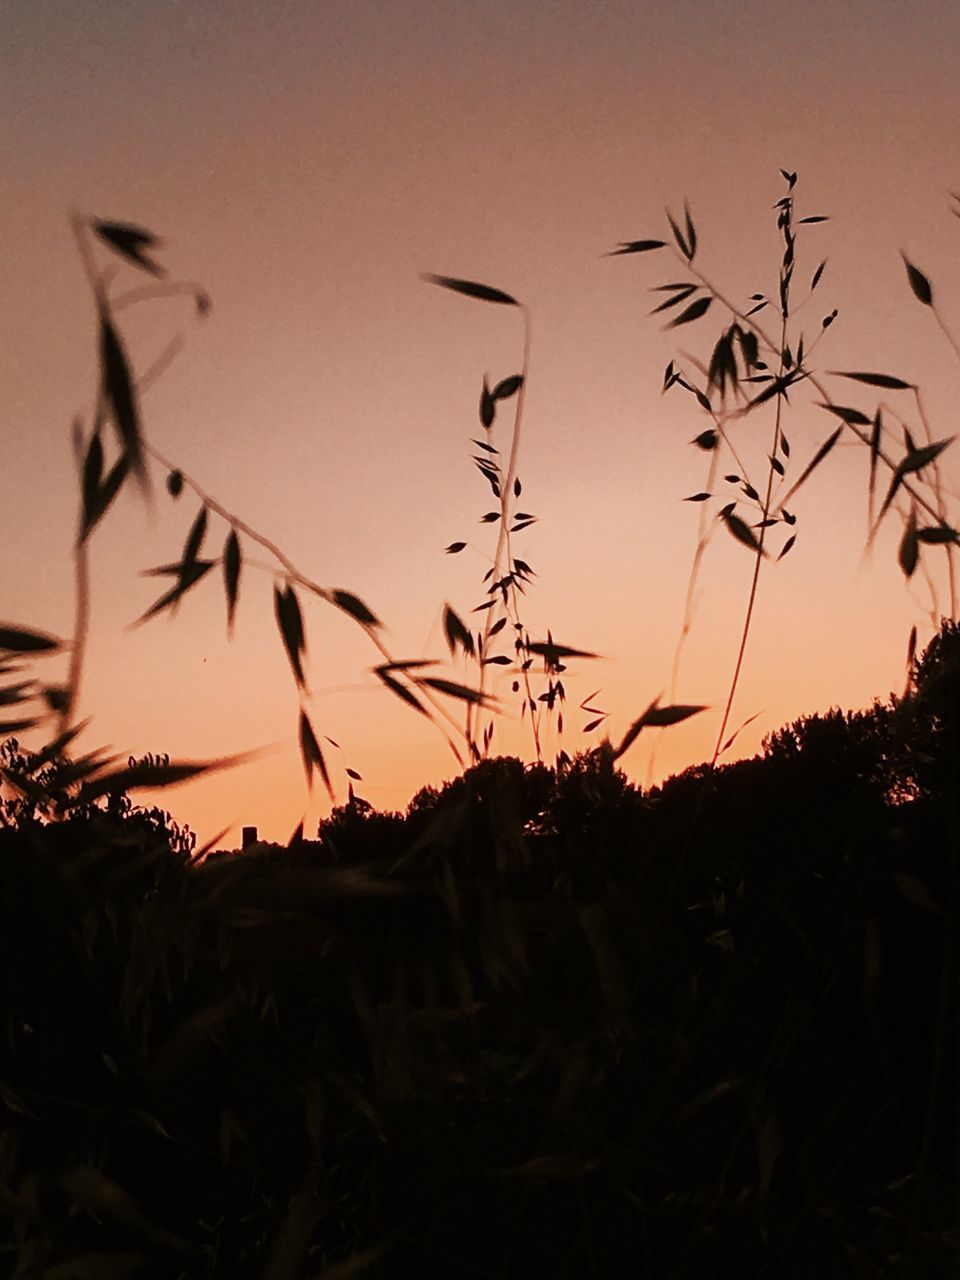 sunset, silhouette, nature, plant, growth, sky, beauty in nature, outdoors, no people, field, tranquility, scenics, grass, tree, close-up, day